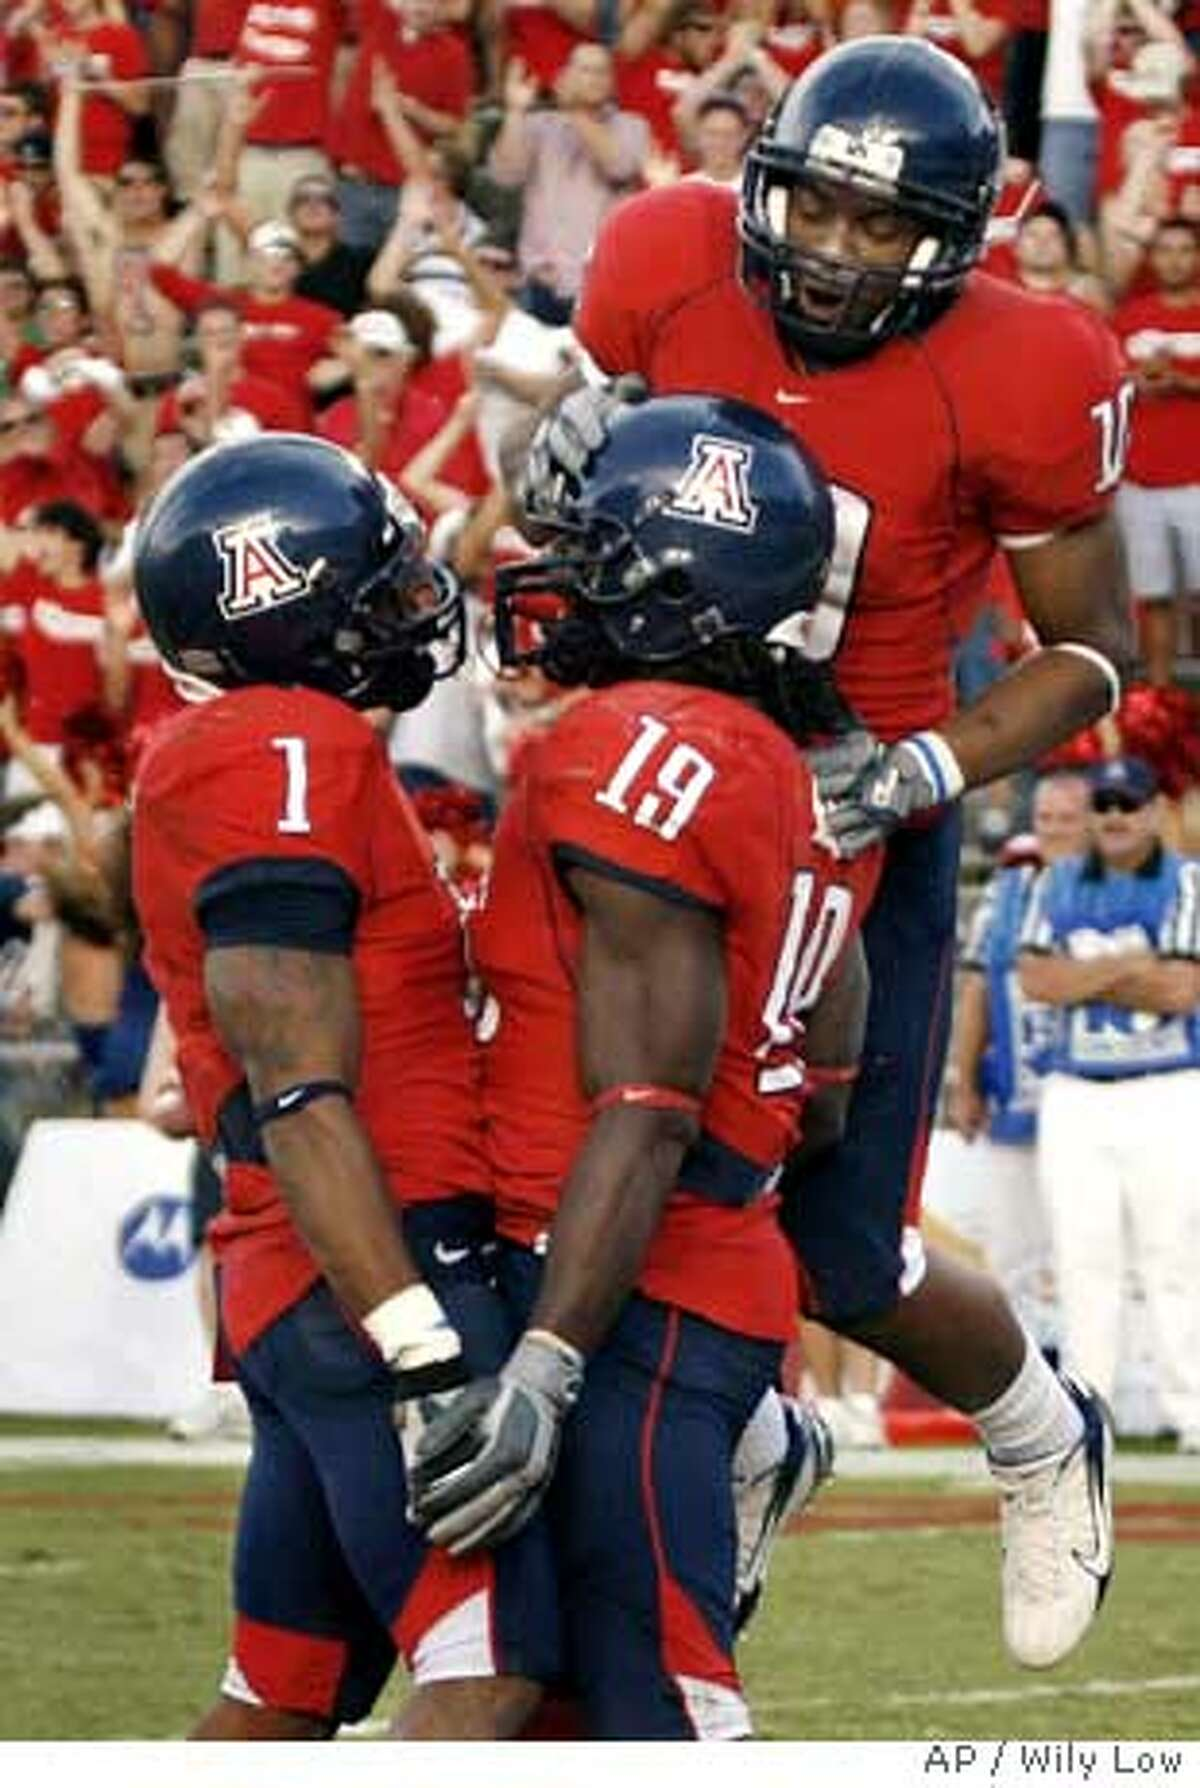 Arizona's Chris Henry (19) is congratulated by teammates Syndric Steptoe (1) and Michael Thomas, behind, after scoring a touchdown in the third quarter against California in a college football game on Saturday, Nov. 11, 2006, in Tucson, Ariz. Arizona won, 24-20. (AP Photo/ Wily Low)